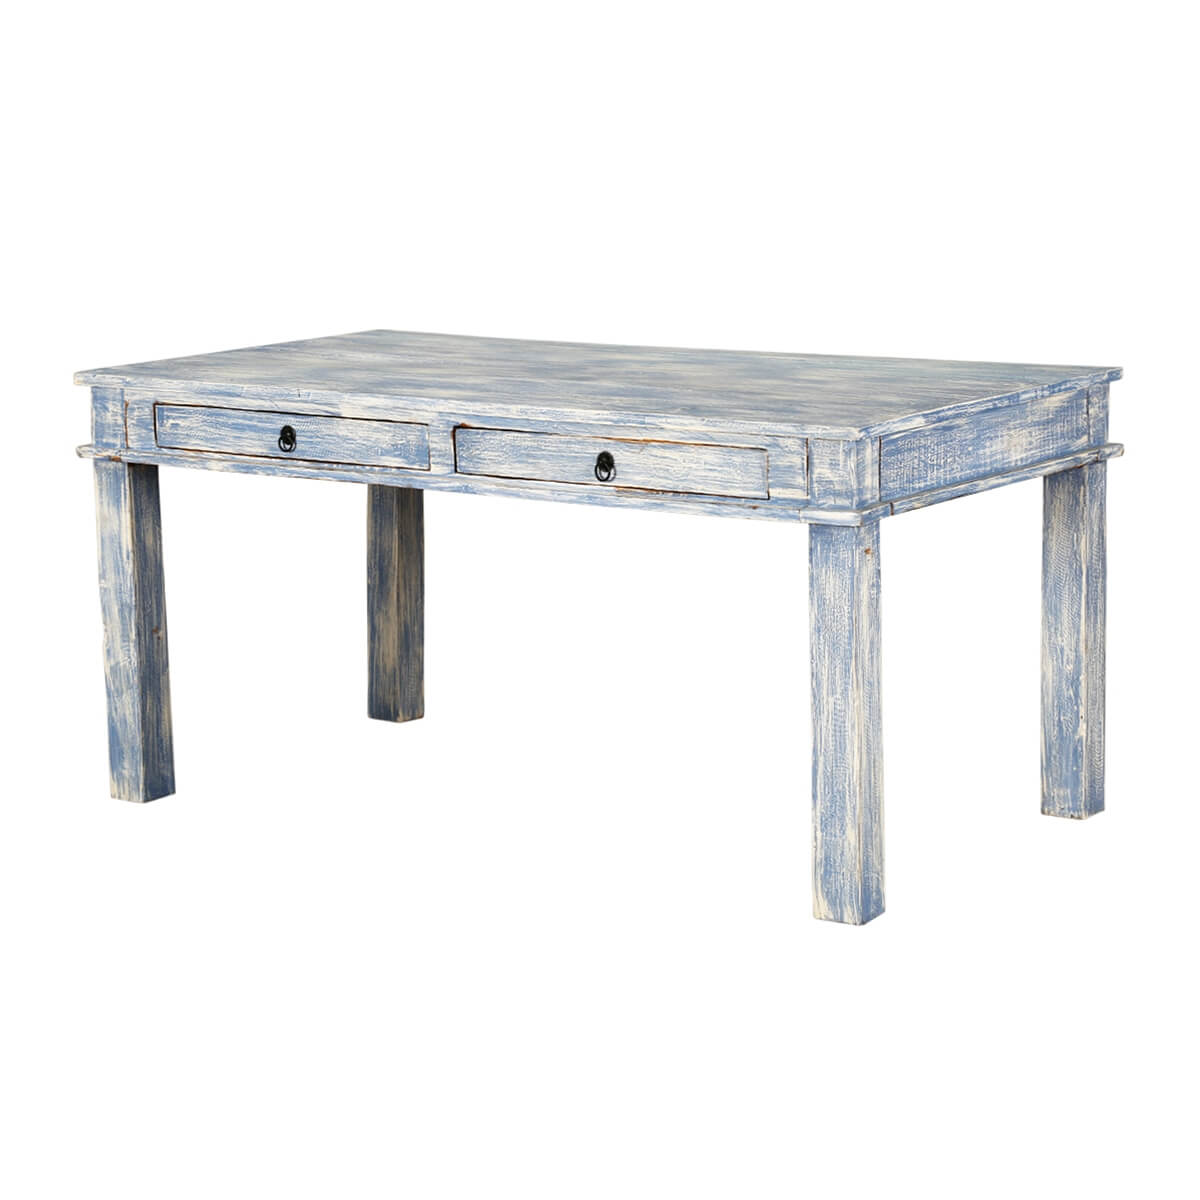 Distressed Blue Reclaimed Wood Kitchen Dining Table